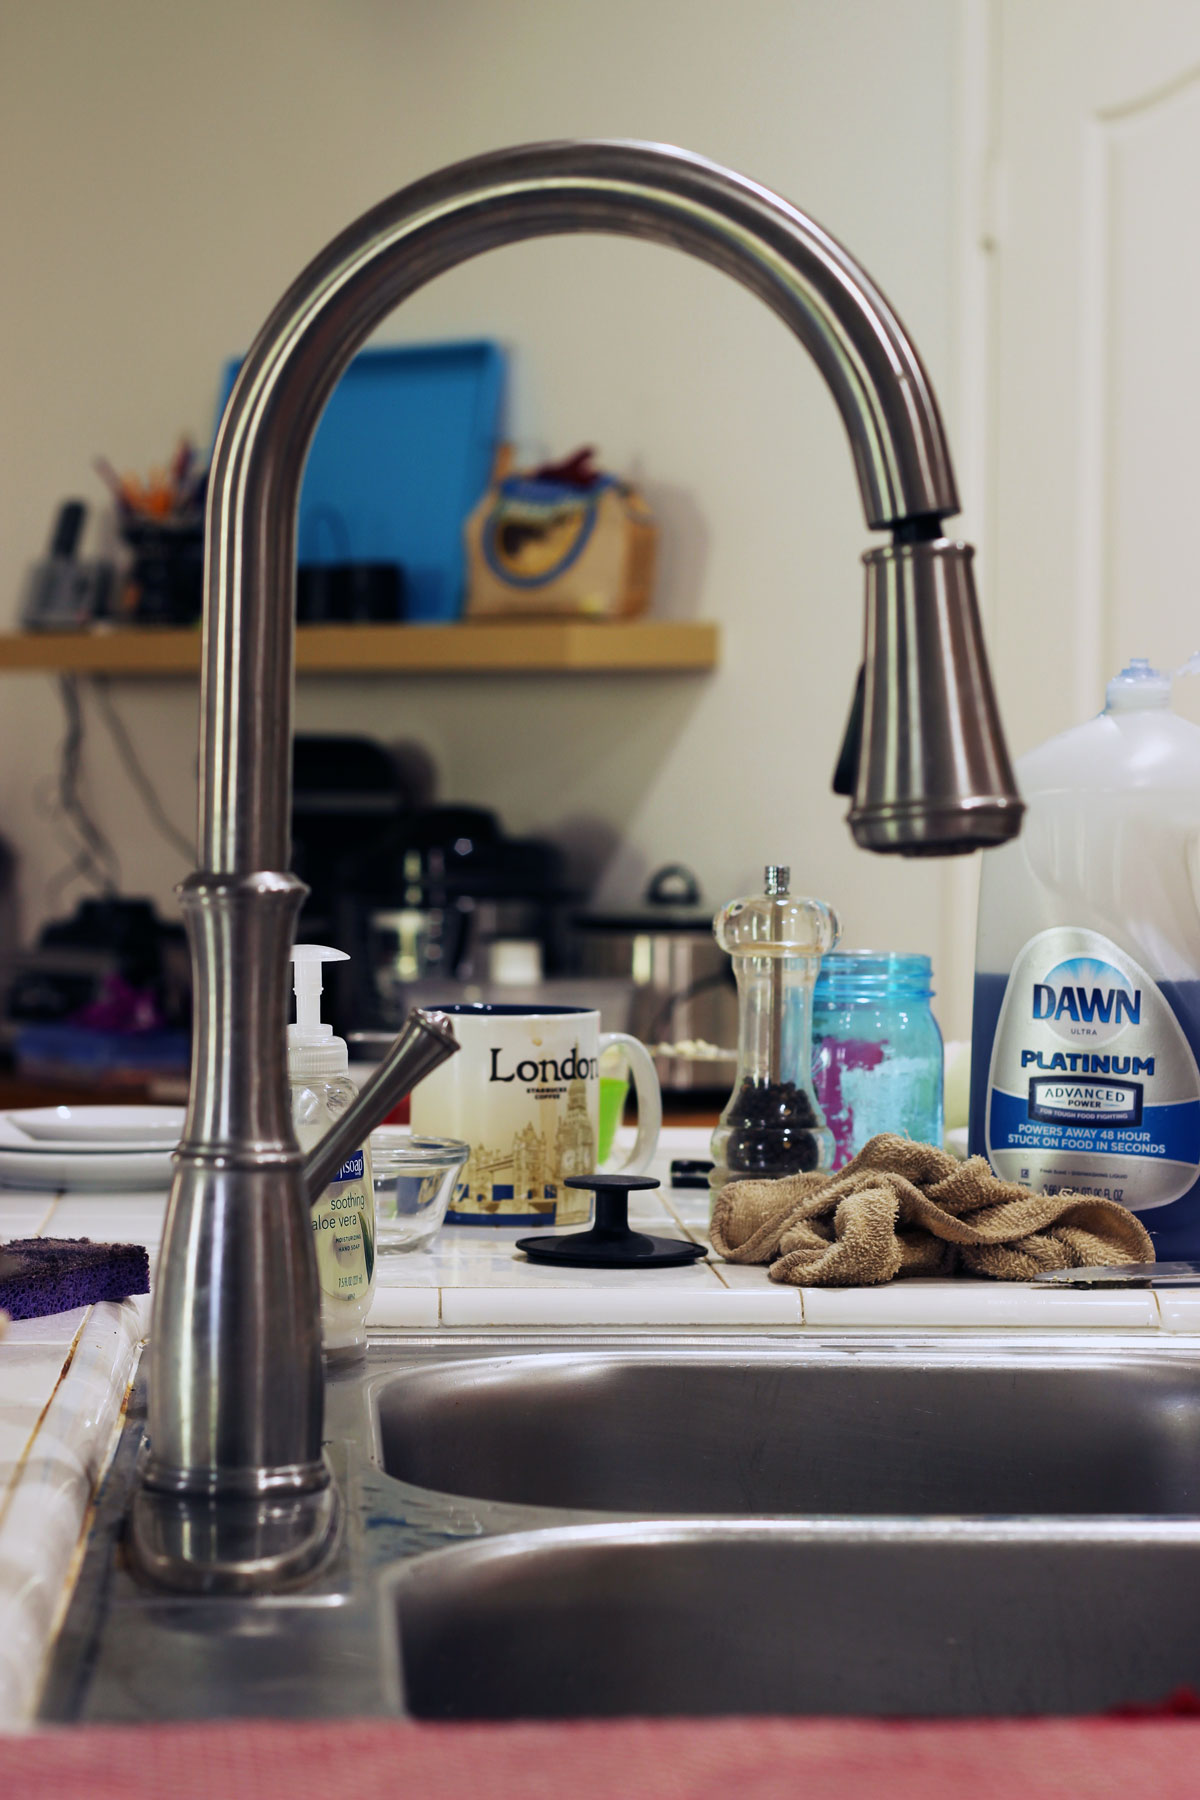 clutter on counter by kitchen sink